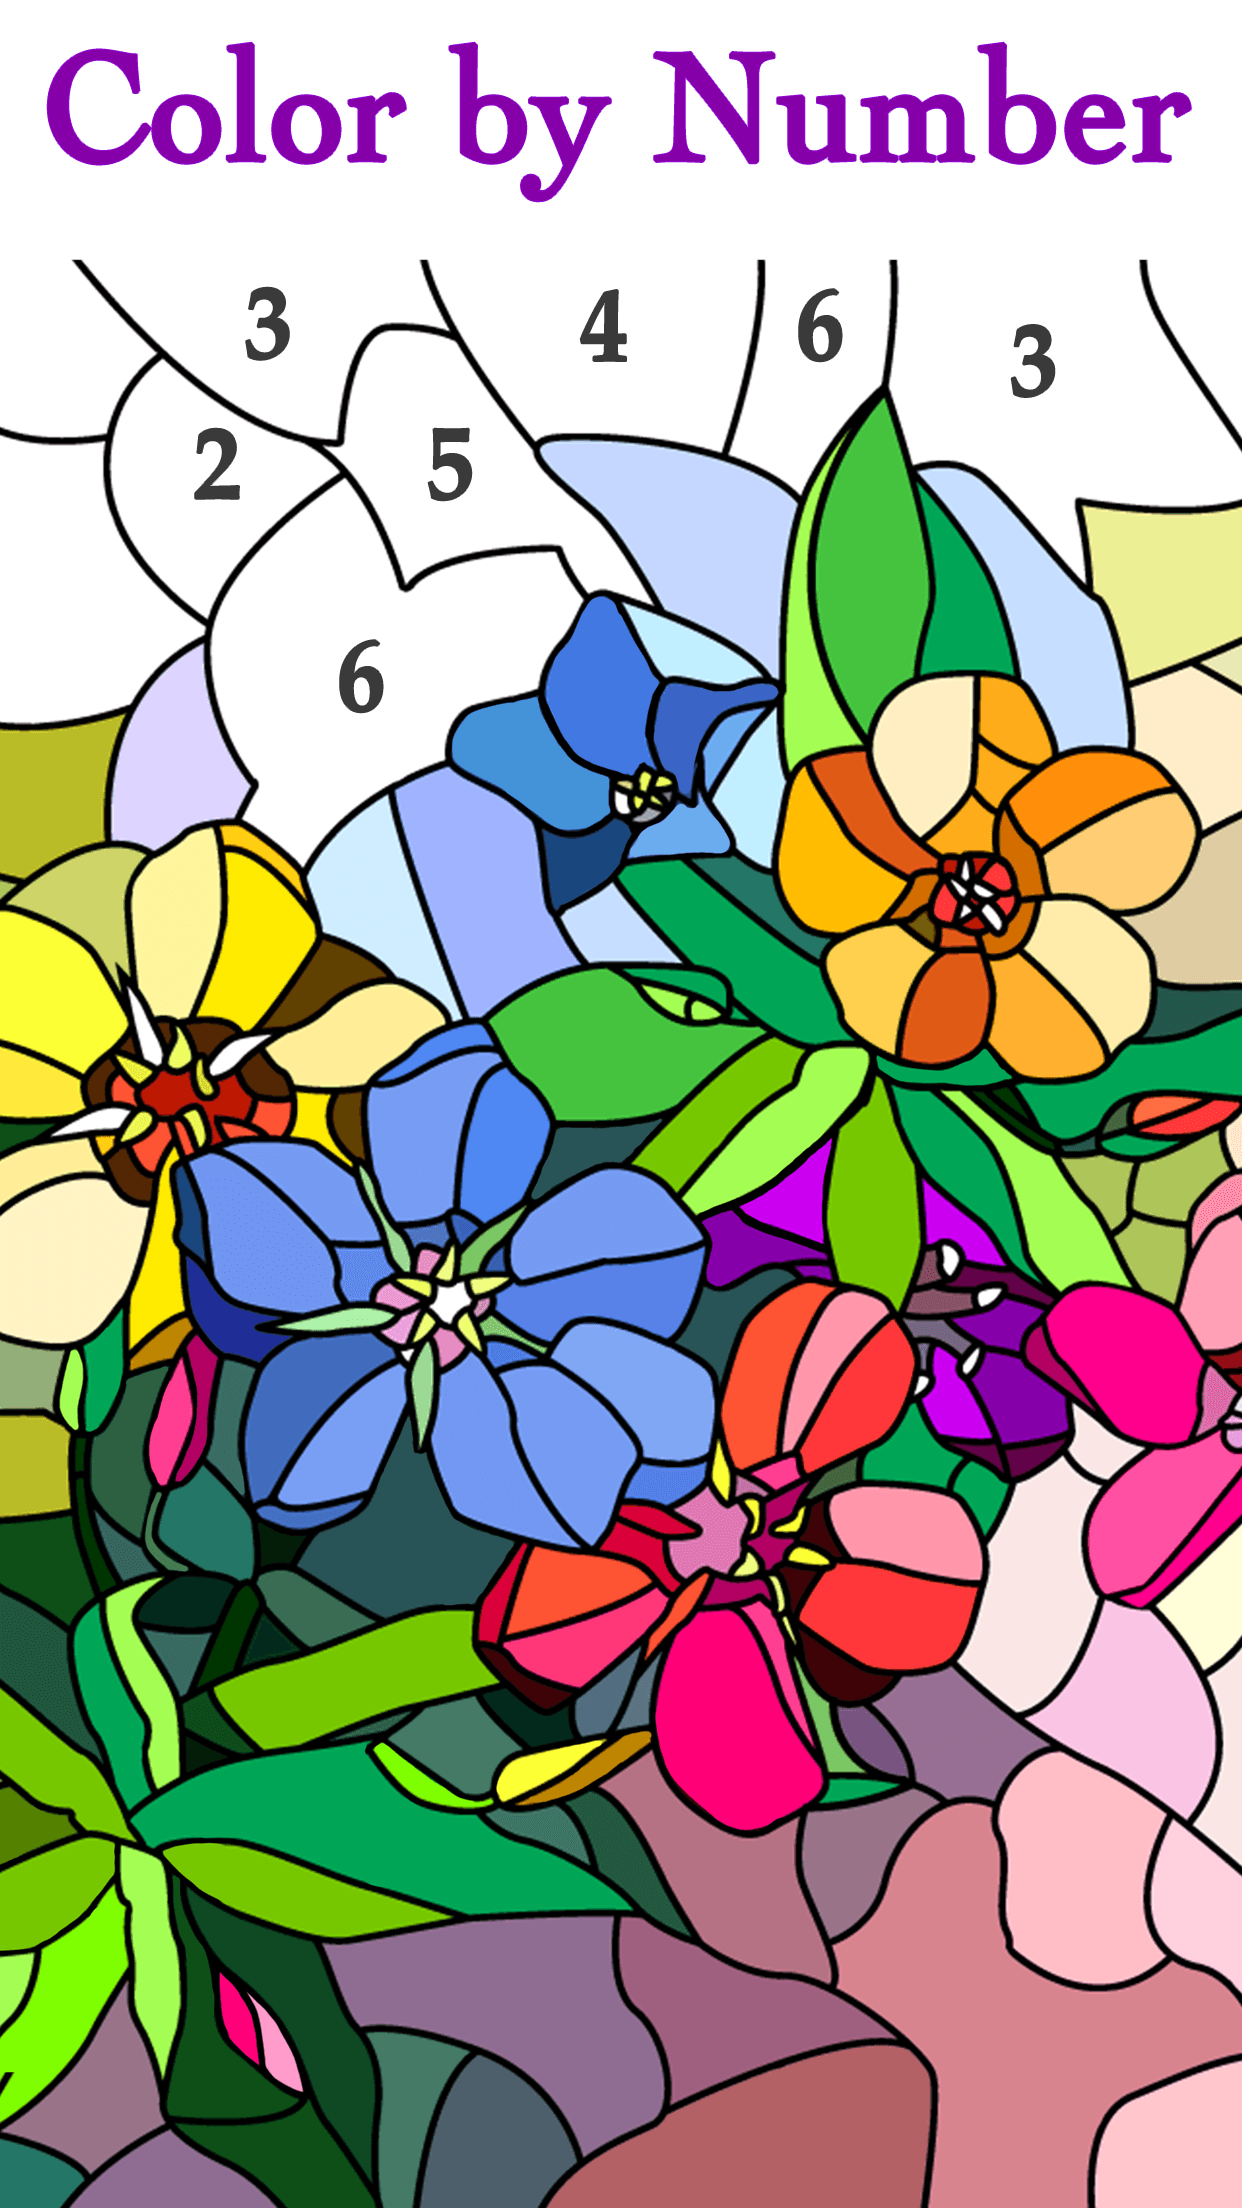 Download Happy Color - Color by Number on PC with BlueStacks